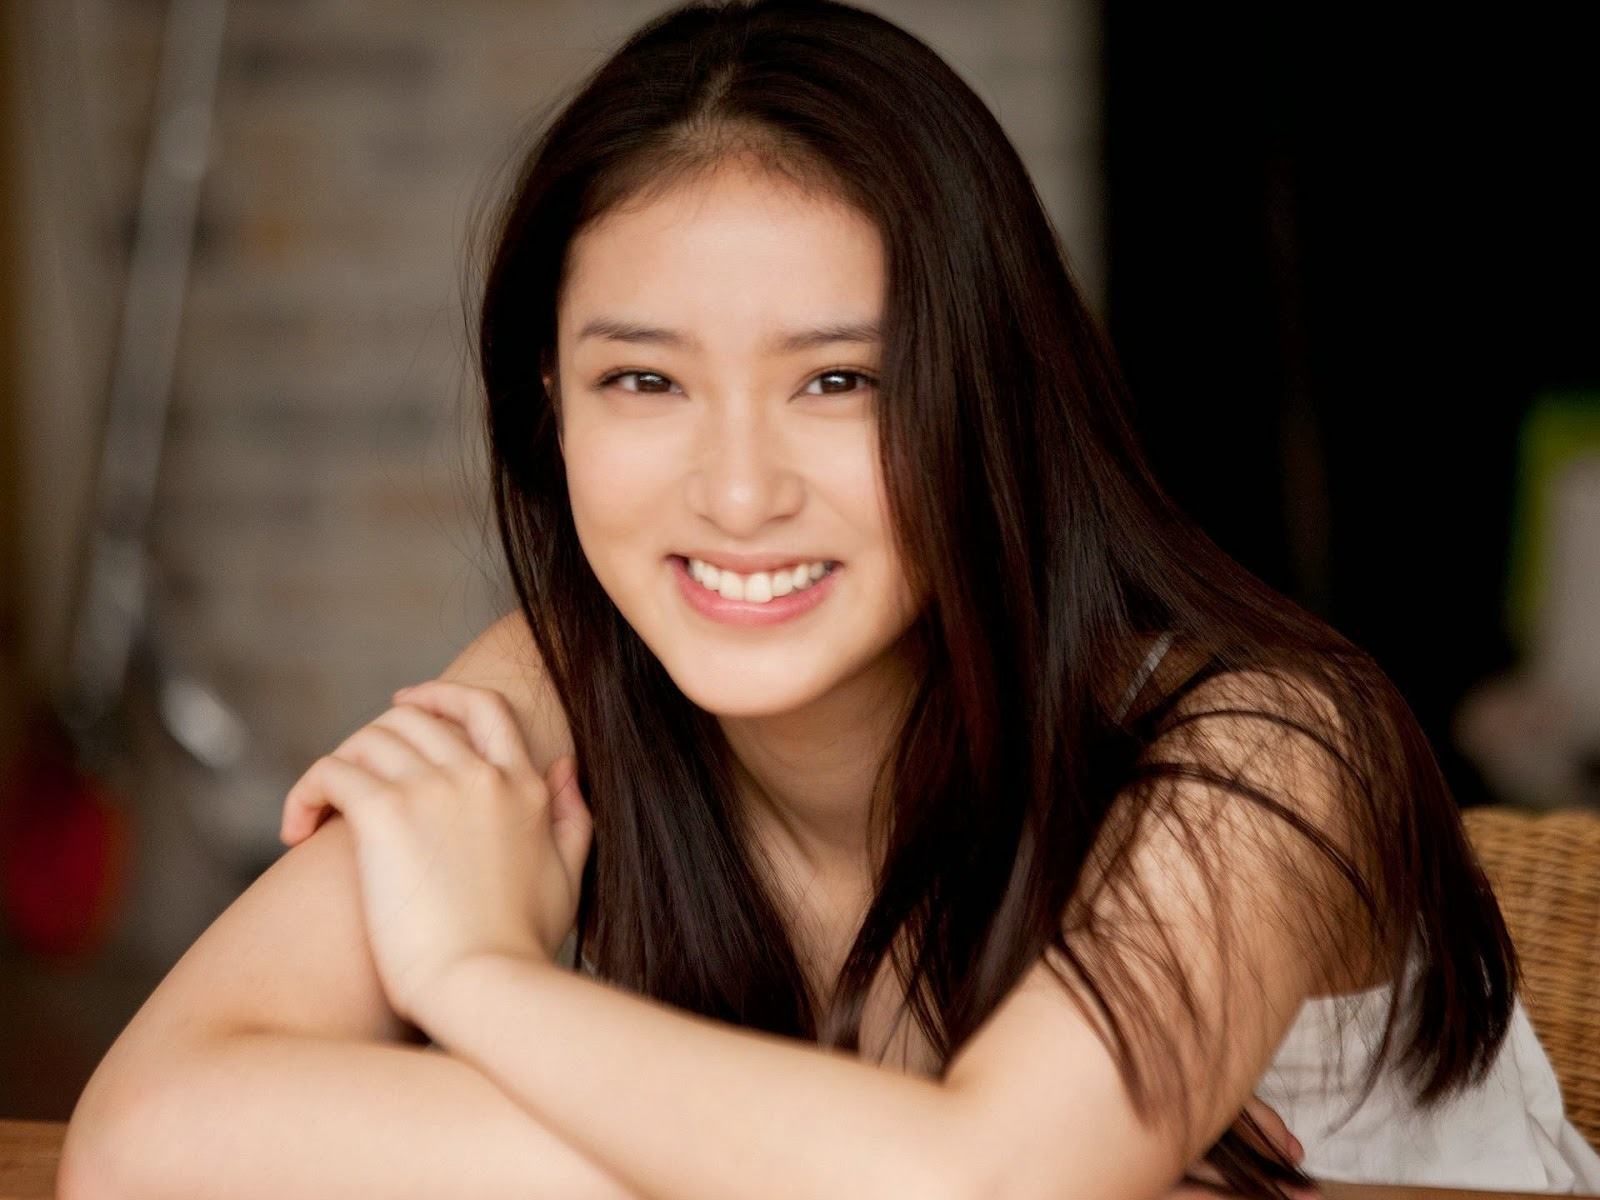 Pretty Japanese Actress Emi Takei Wallpapers And News Everything 4u